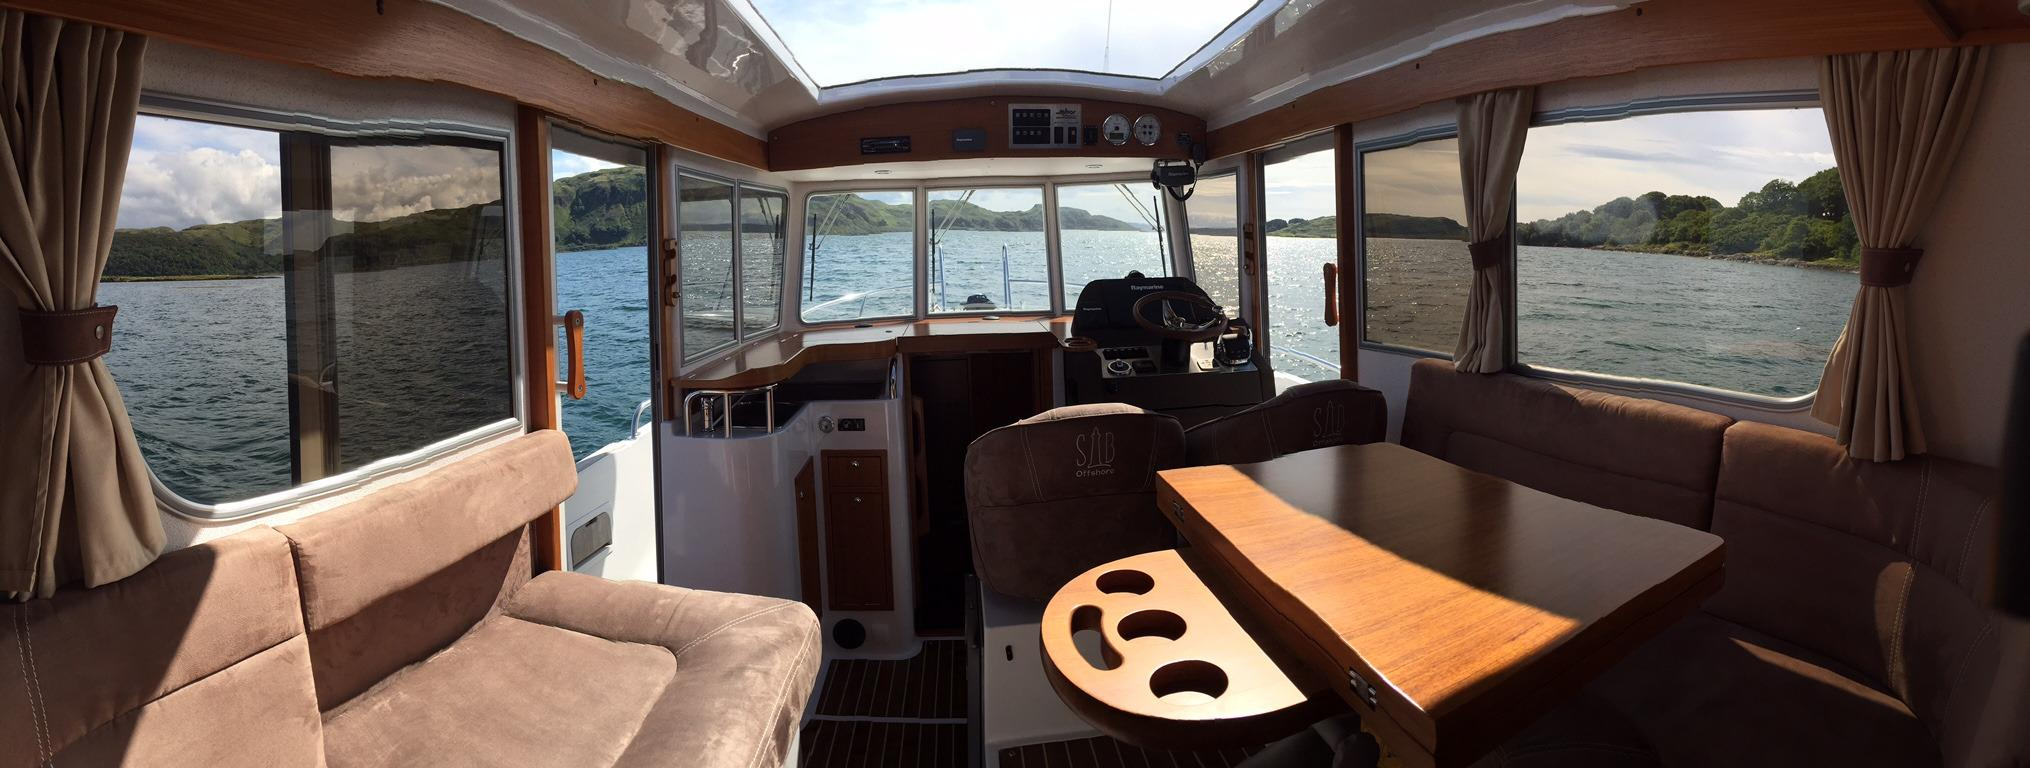 Minor Offshore 31 for sale - wheelhouse